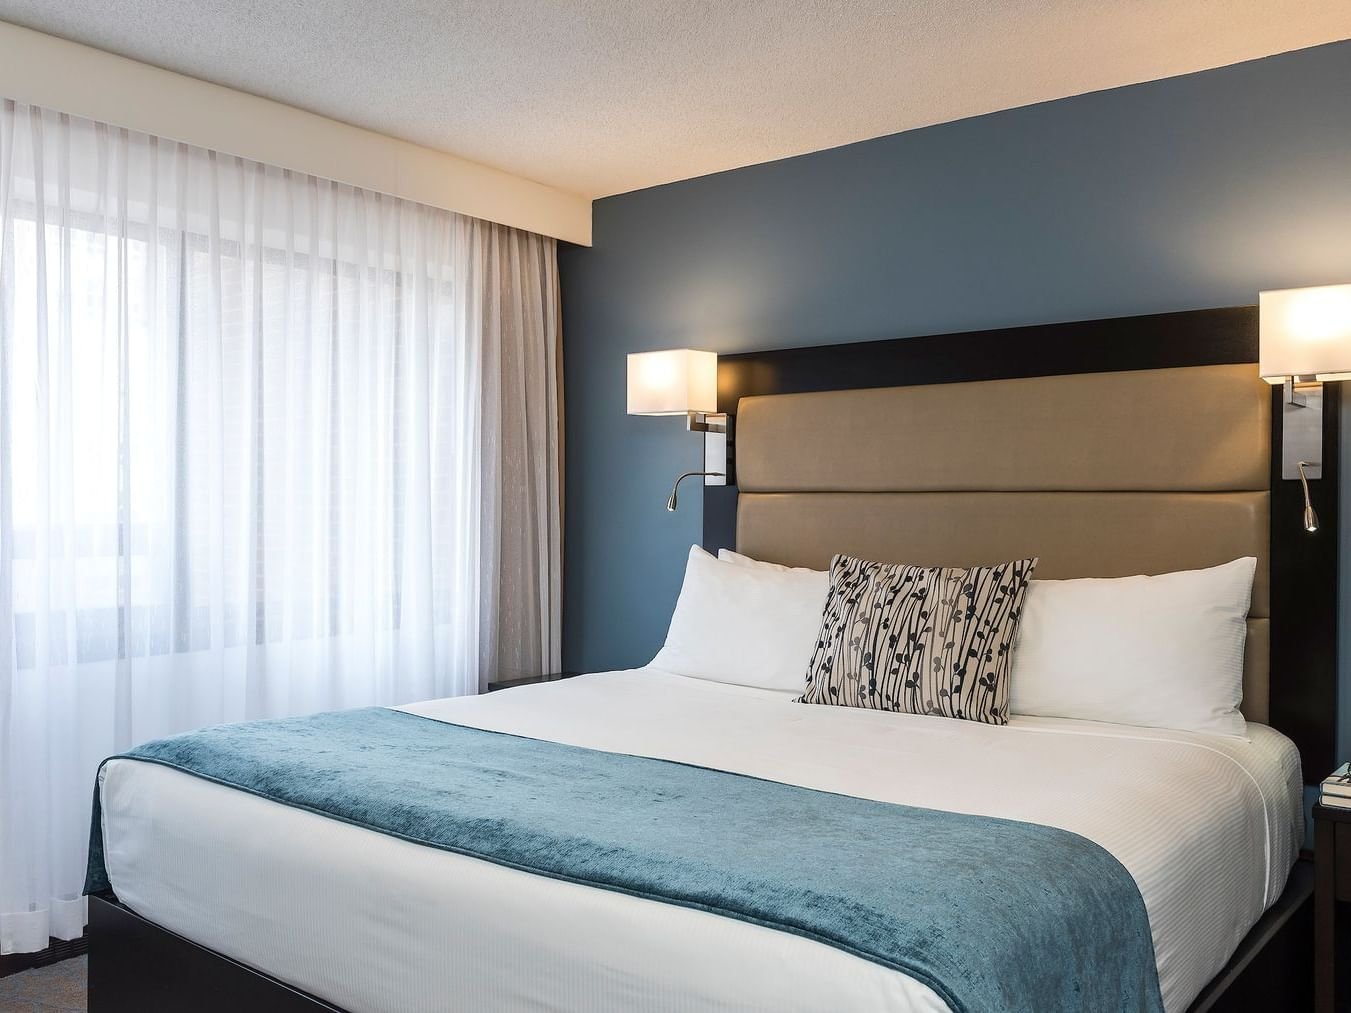 room with bed and wall lamps